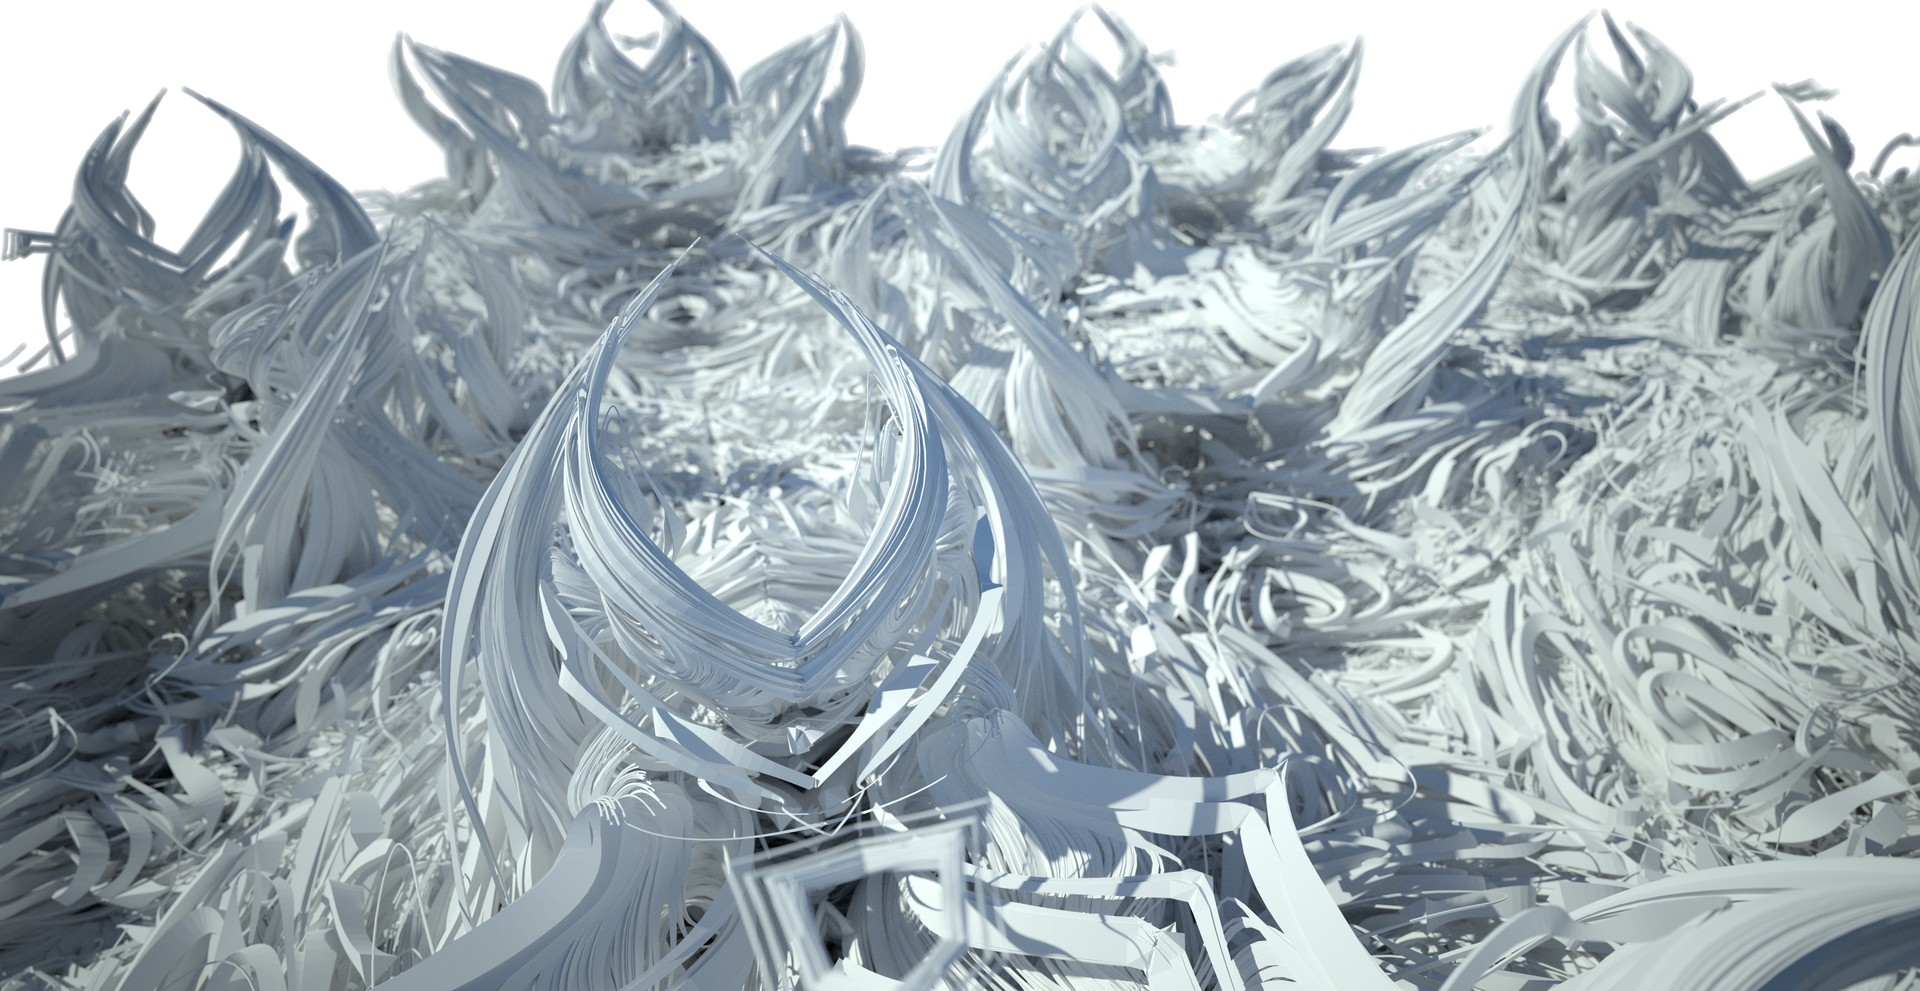 Heribert raab white scene 00000